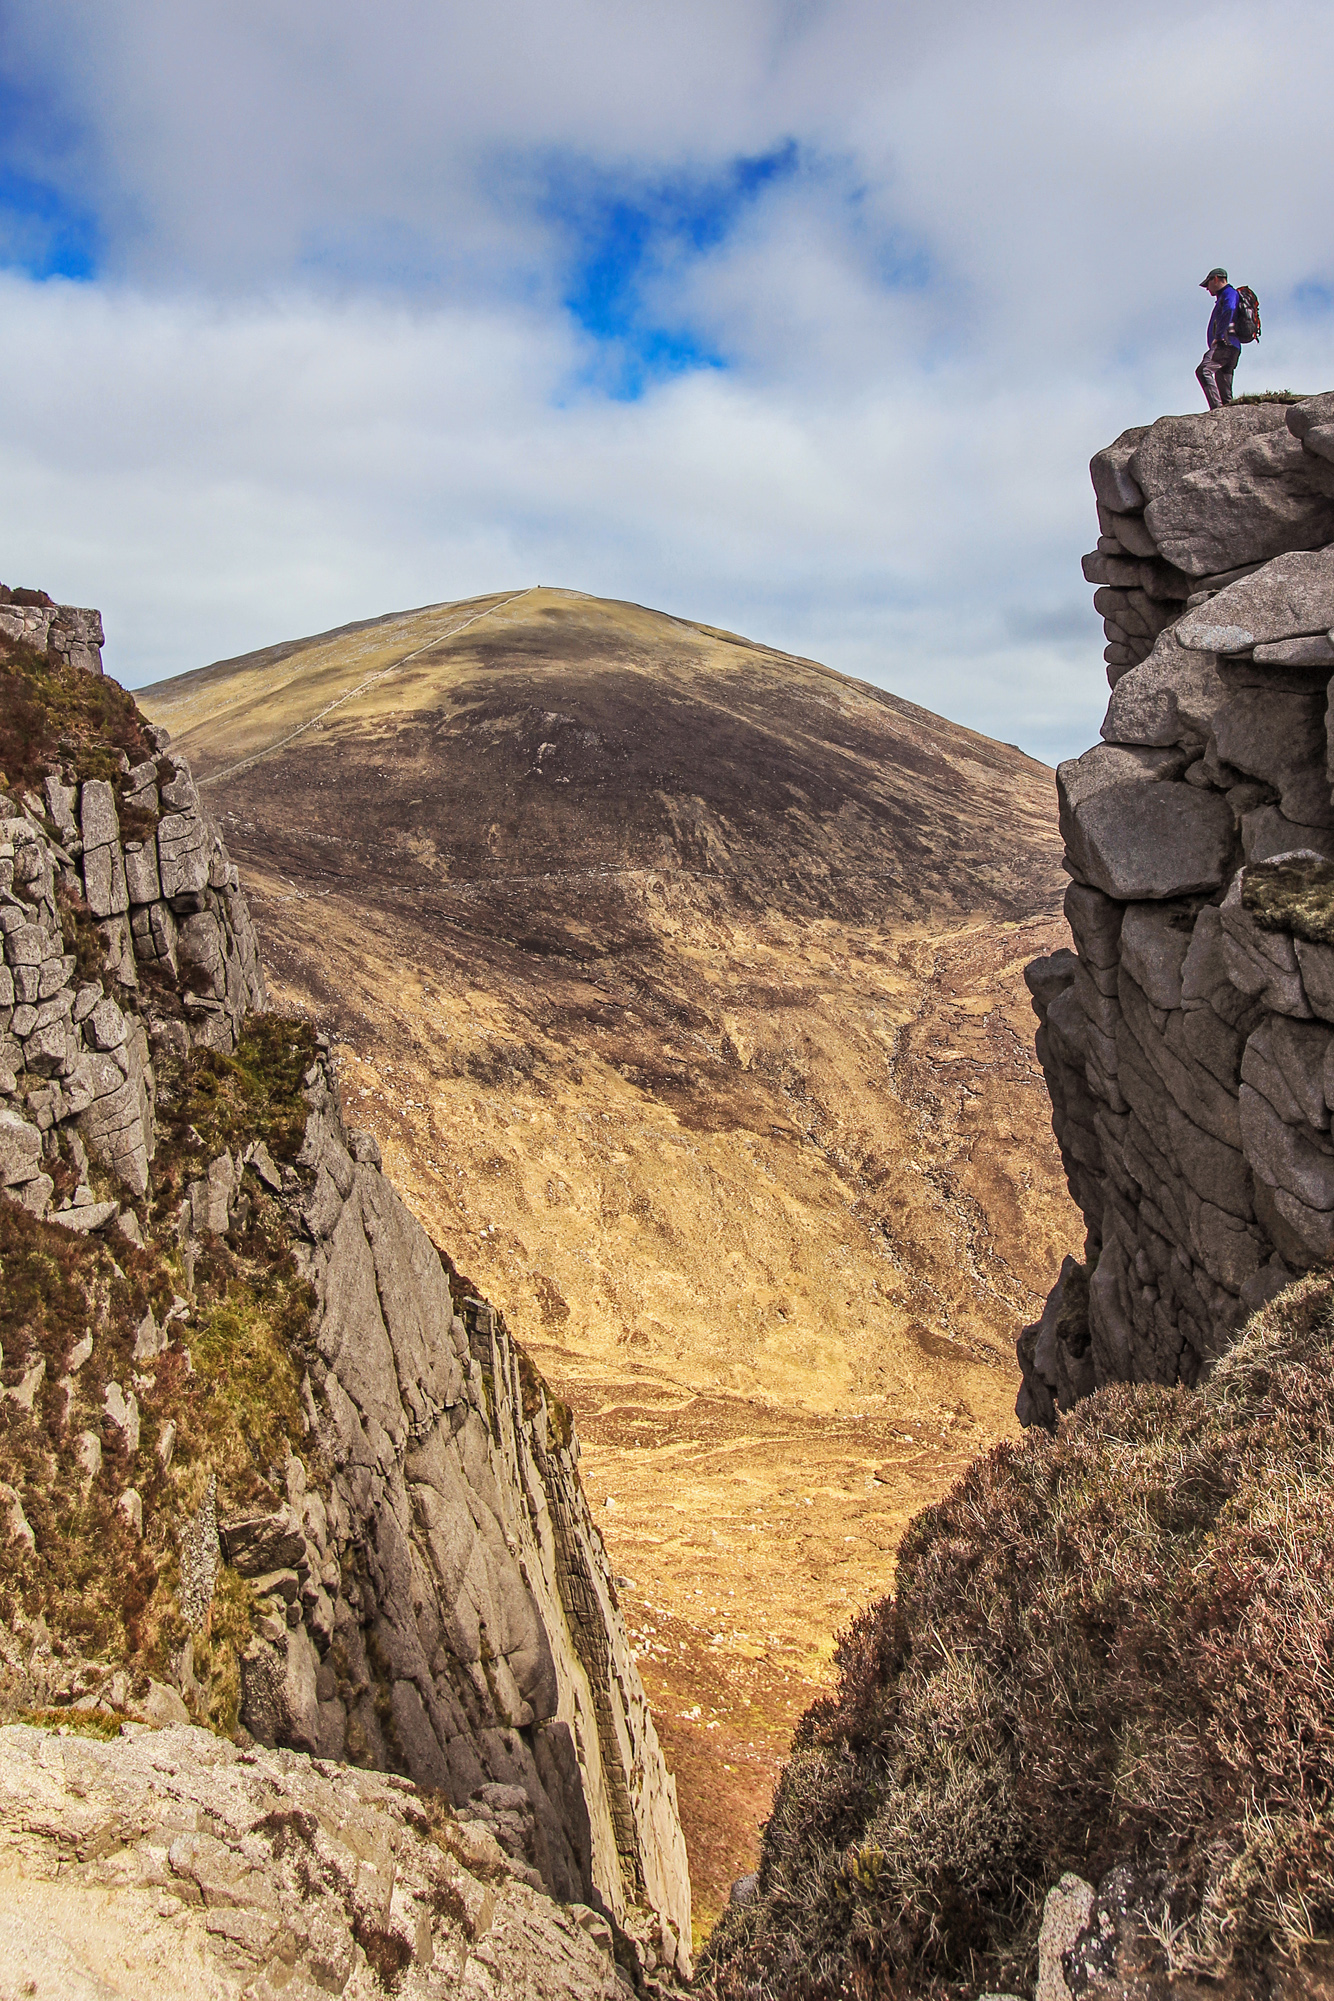 Adrian Hendroff Outsider Awards 2018 Heights of the Mournes Looking toward Slieve Donard from above the Devil's Coachroad